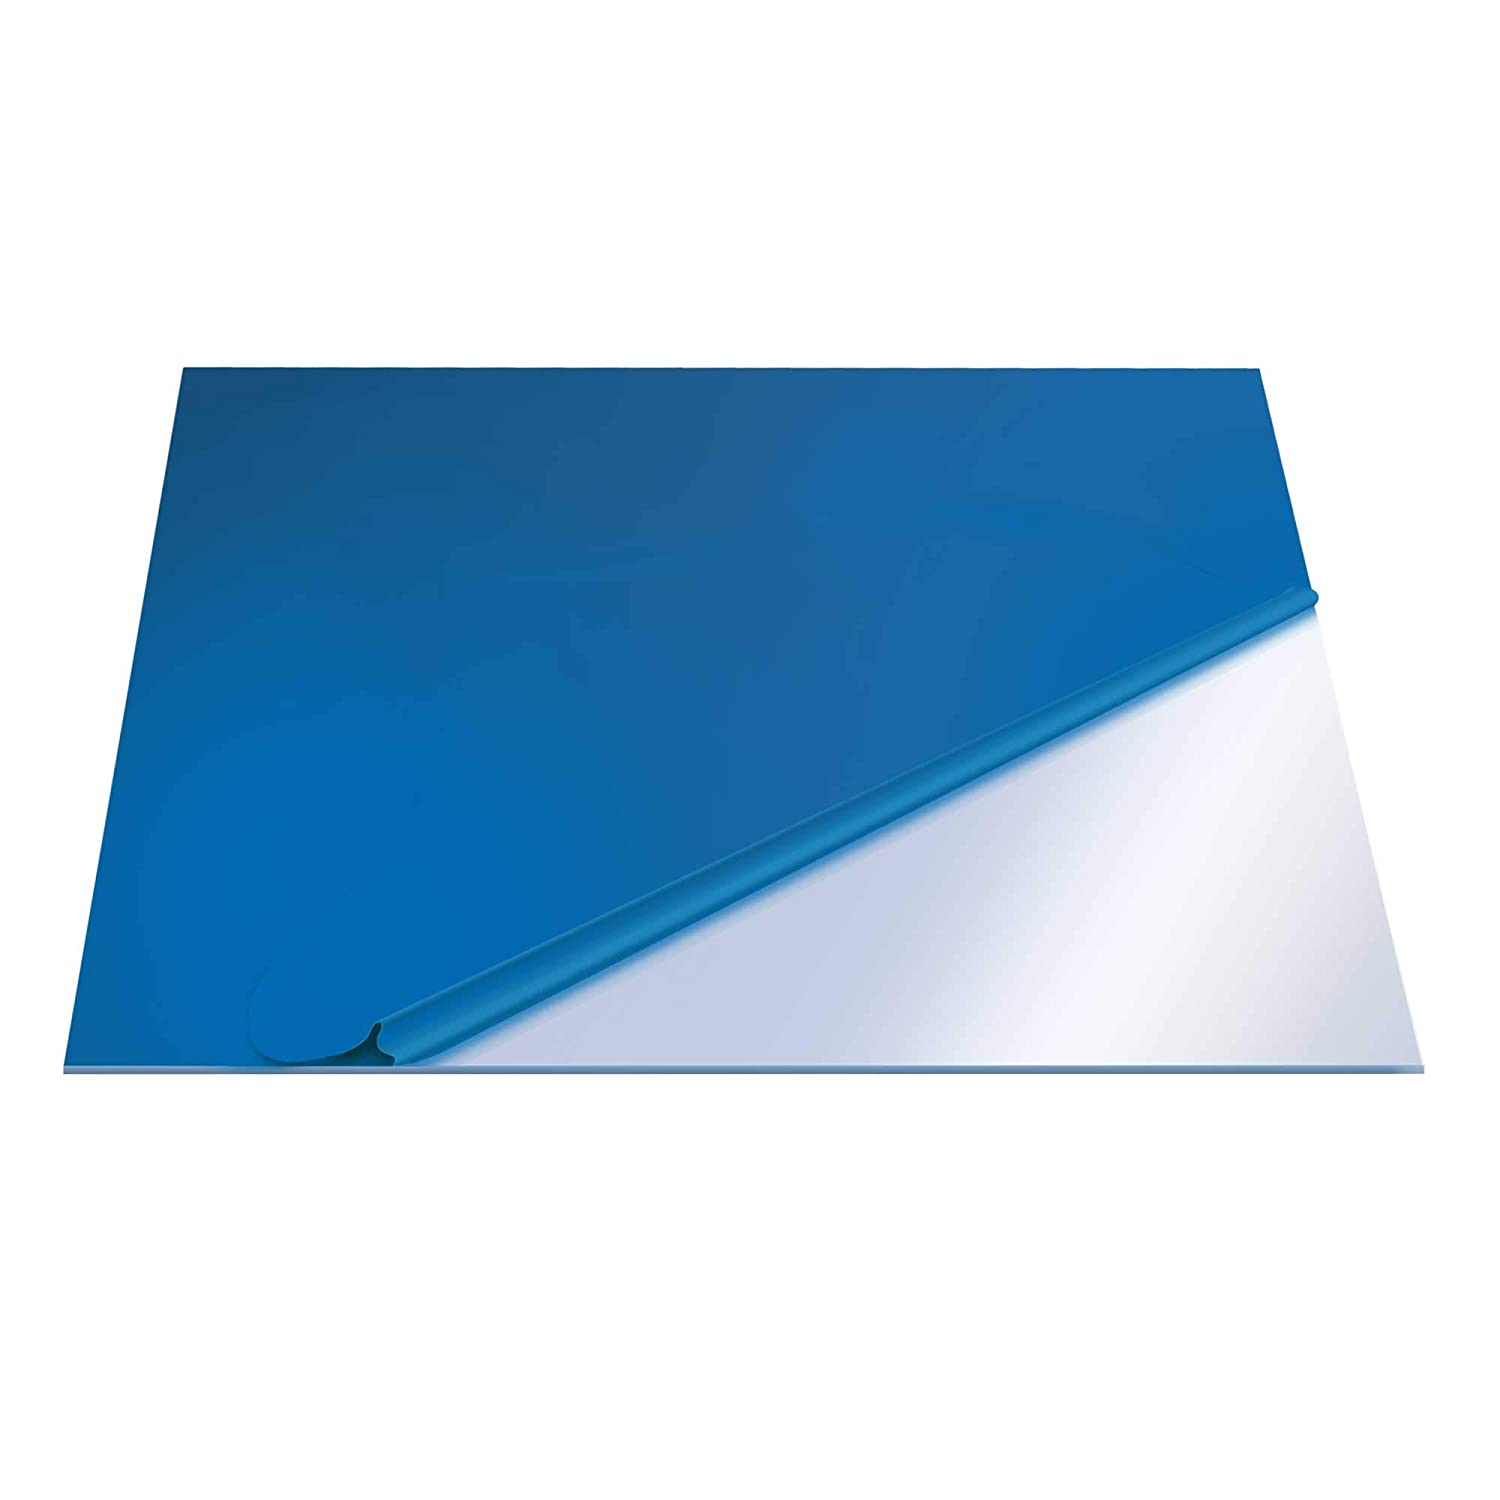 Superior Graphic Supplies PETG Clear Plexiglass Sheets Plastic 4 Year-end gift All items in the store